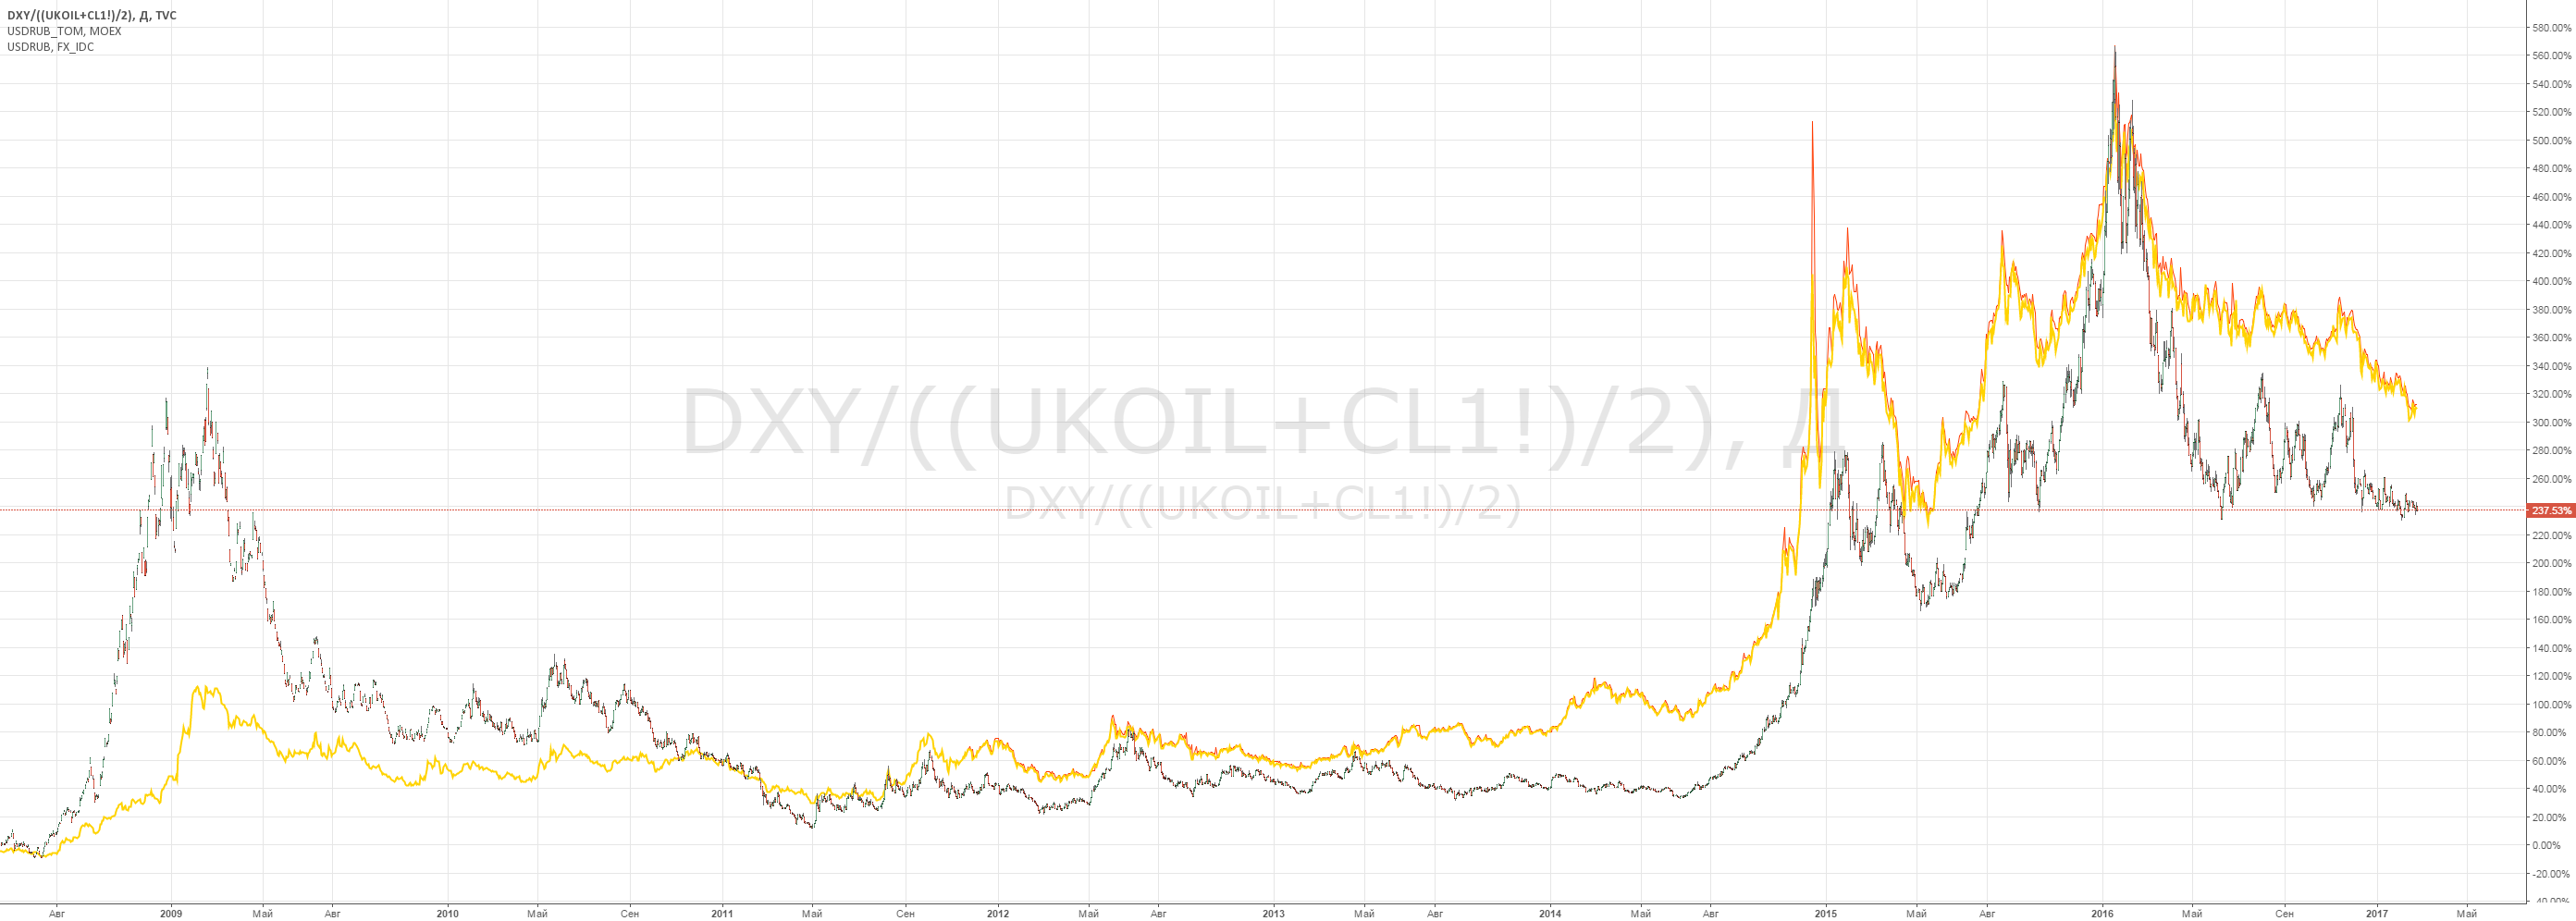 DXY/((UKOIL+CL1!)/2) vs. USDRUB